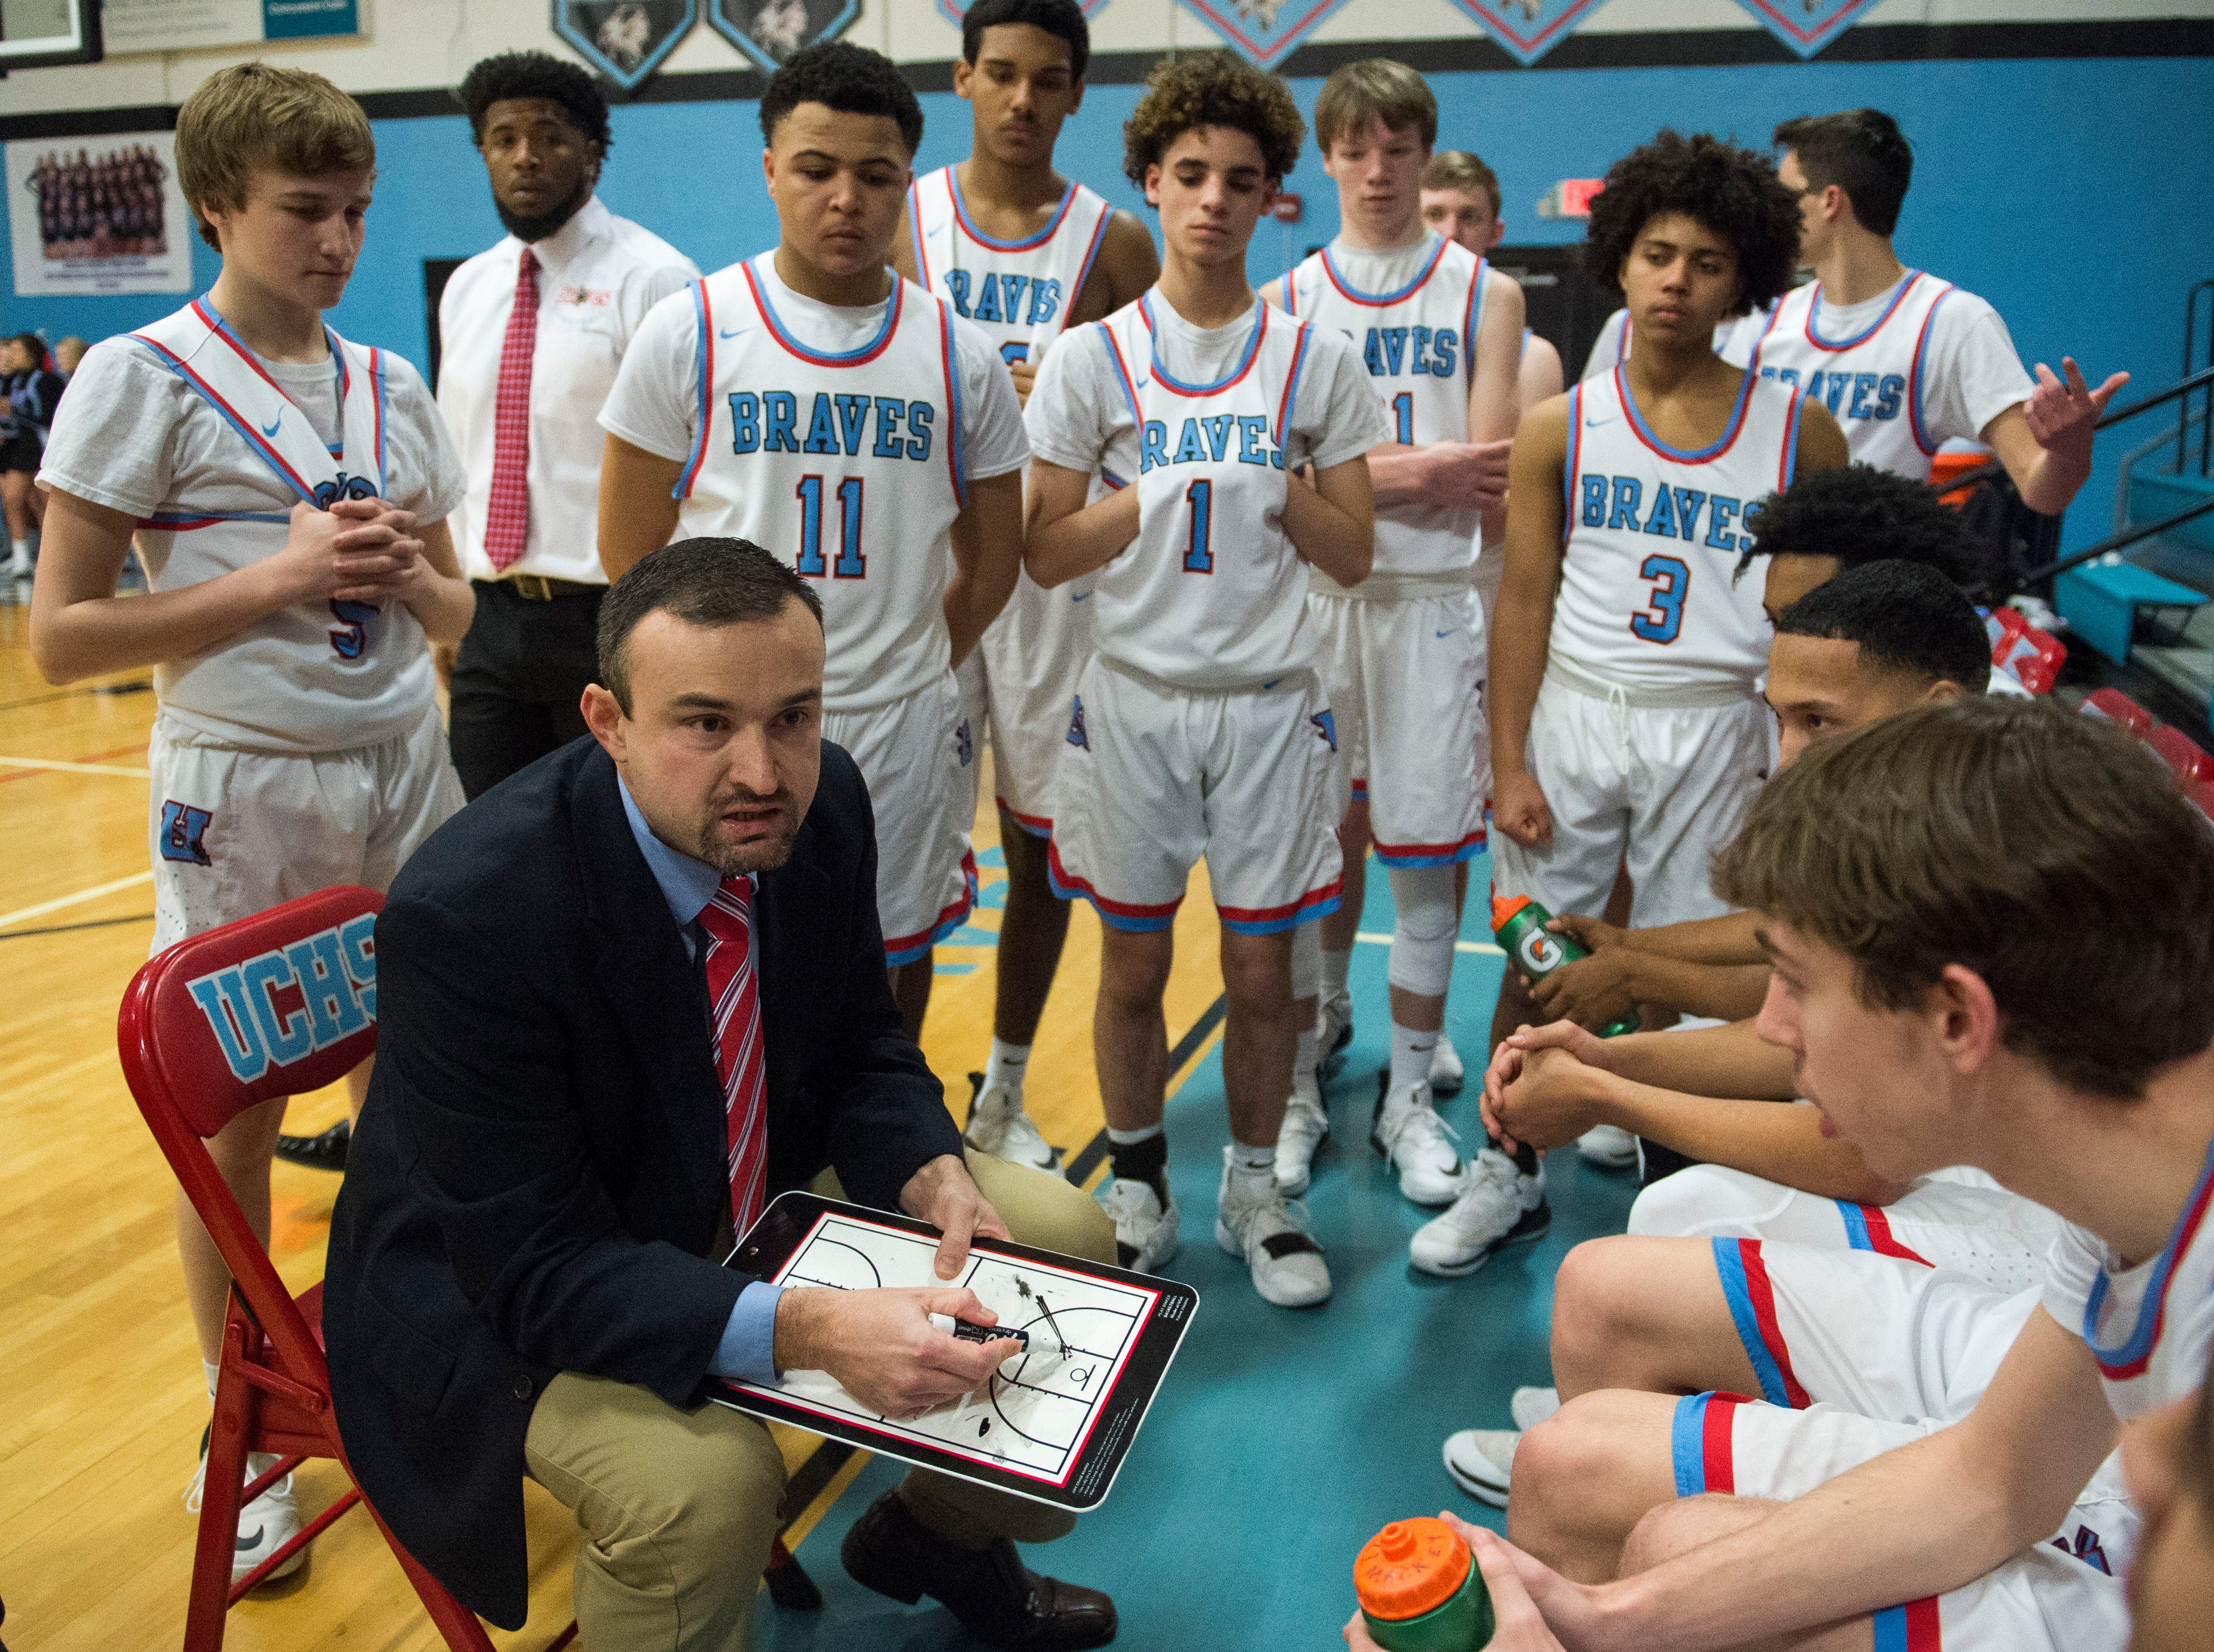 Union County's Head Coach Shane Smith gathers his team on the bench before they take on the Webster County Trojans at the Dr. Doug Hines Gymnasium in Morganfield, Ky. Tuesday, Feb. 19, 2019.